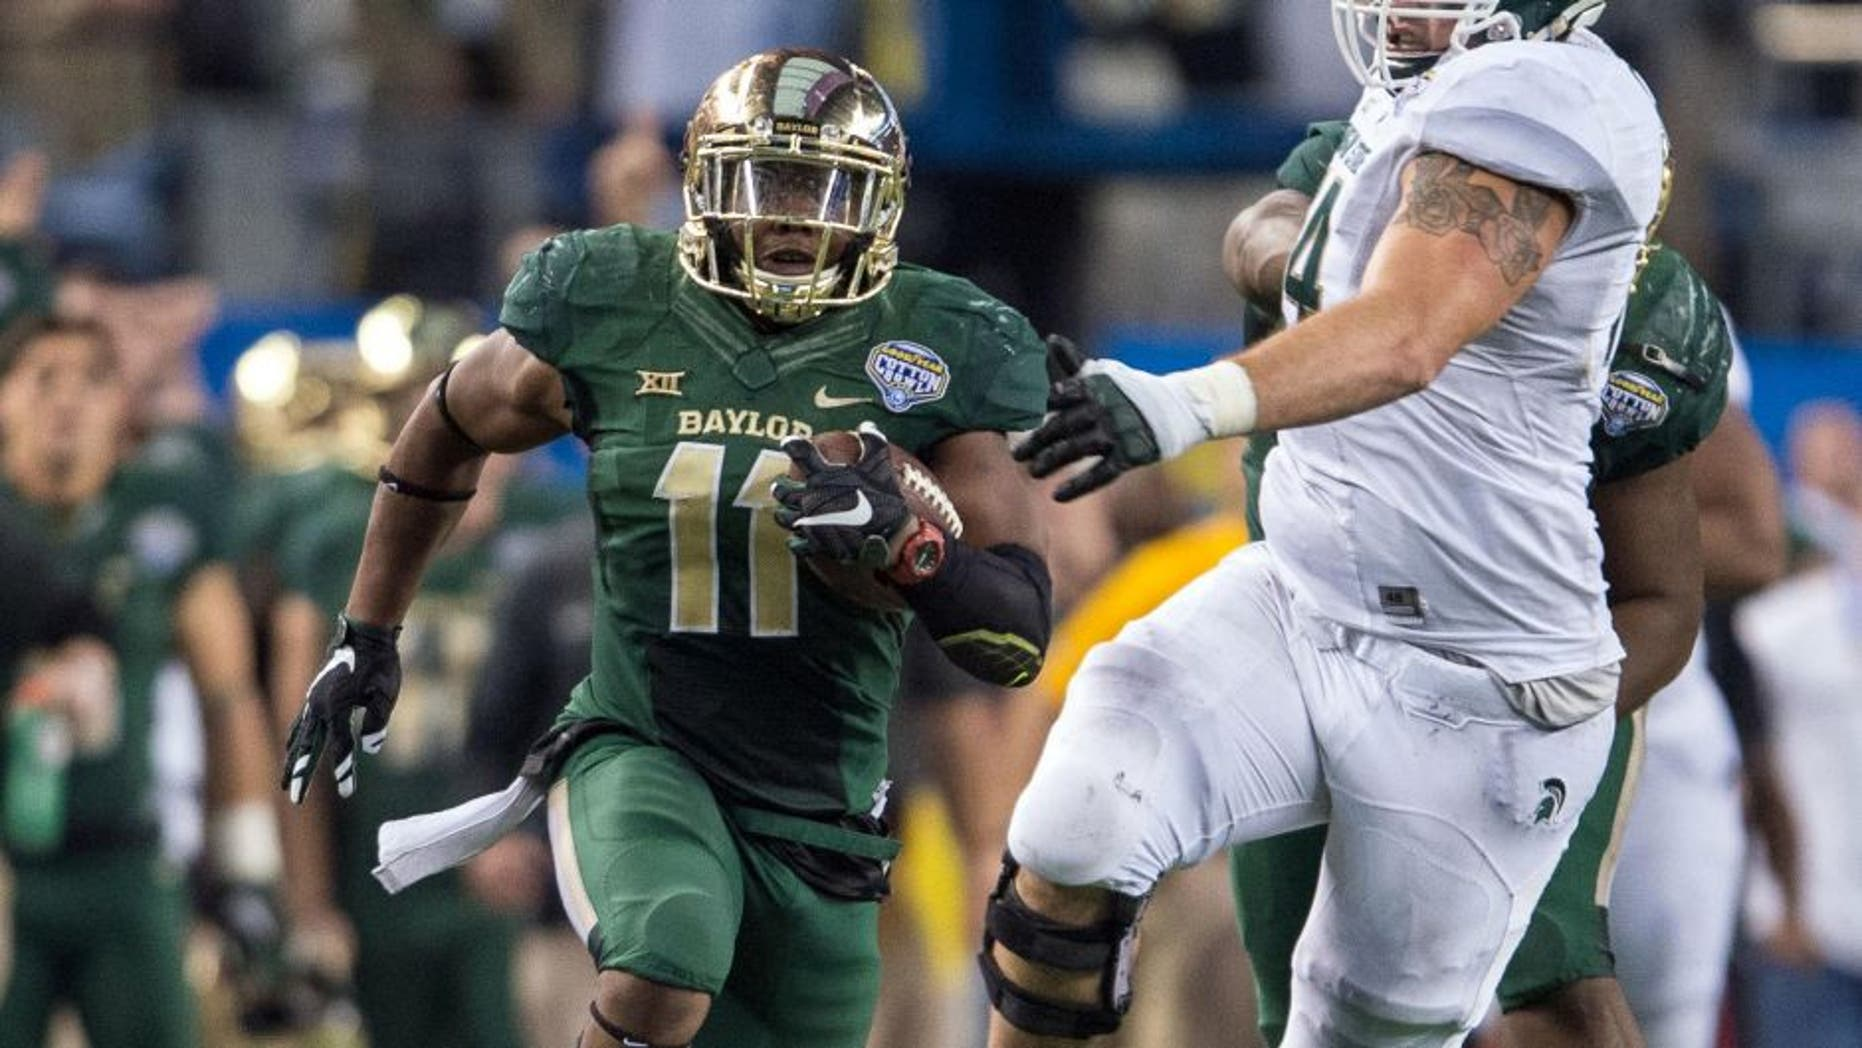 Jan 1, 2015; Arlington, TX, USA; Baylor Bears linebacker Taylor Young (11) returns an interception during the second half against the Michigan State Spartans in the 2015 Cotton Bowl Classic at AT&T Stadium. Young is named the defensive MVP. The Spartans defeated the Bears 42-41. Mandatory Credit: Jerome Miron-USA TODAY Sports